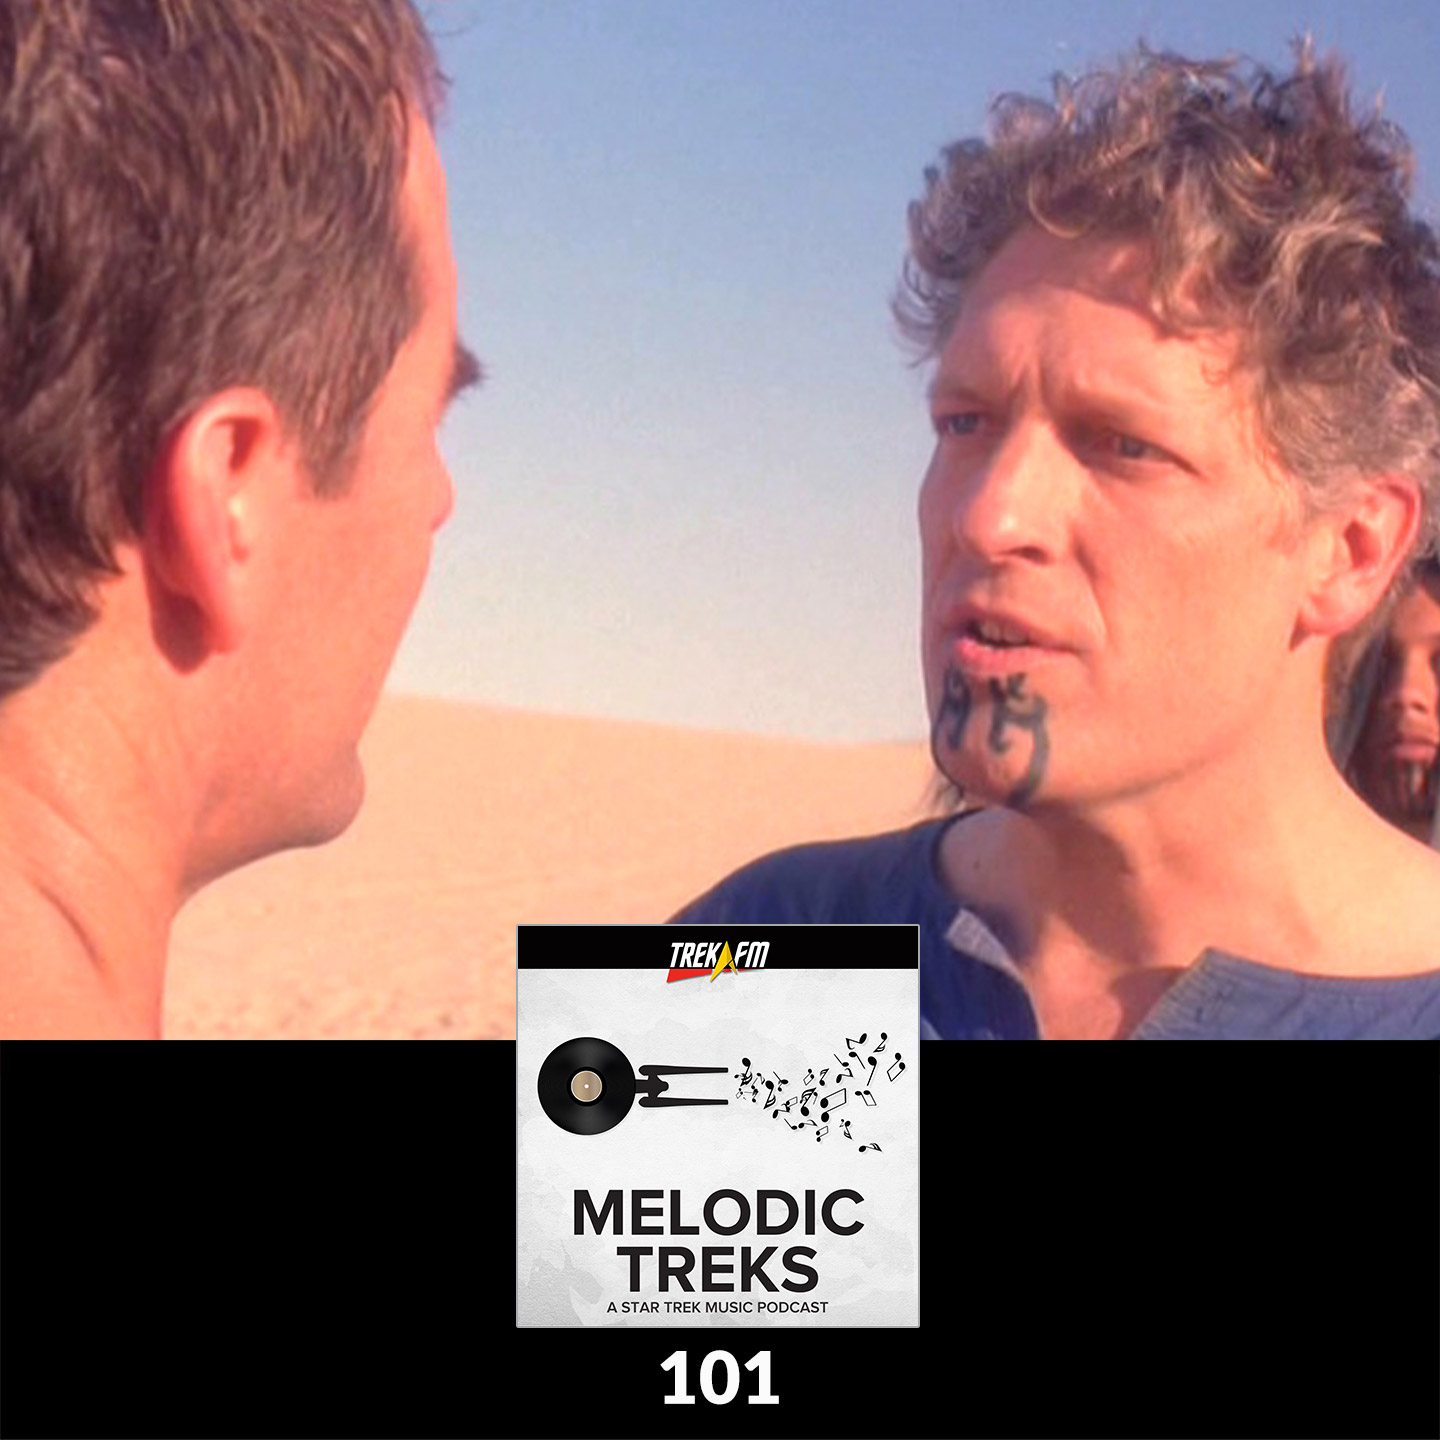 Melodic Treks: A Star Trek Music Podcast | Podbay